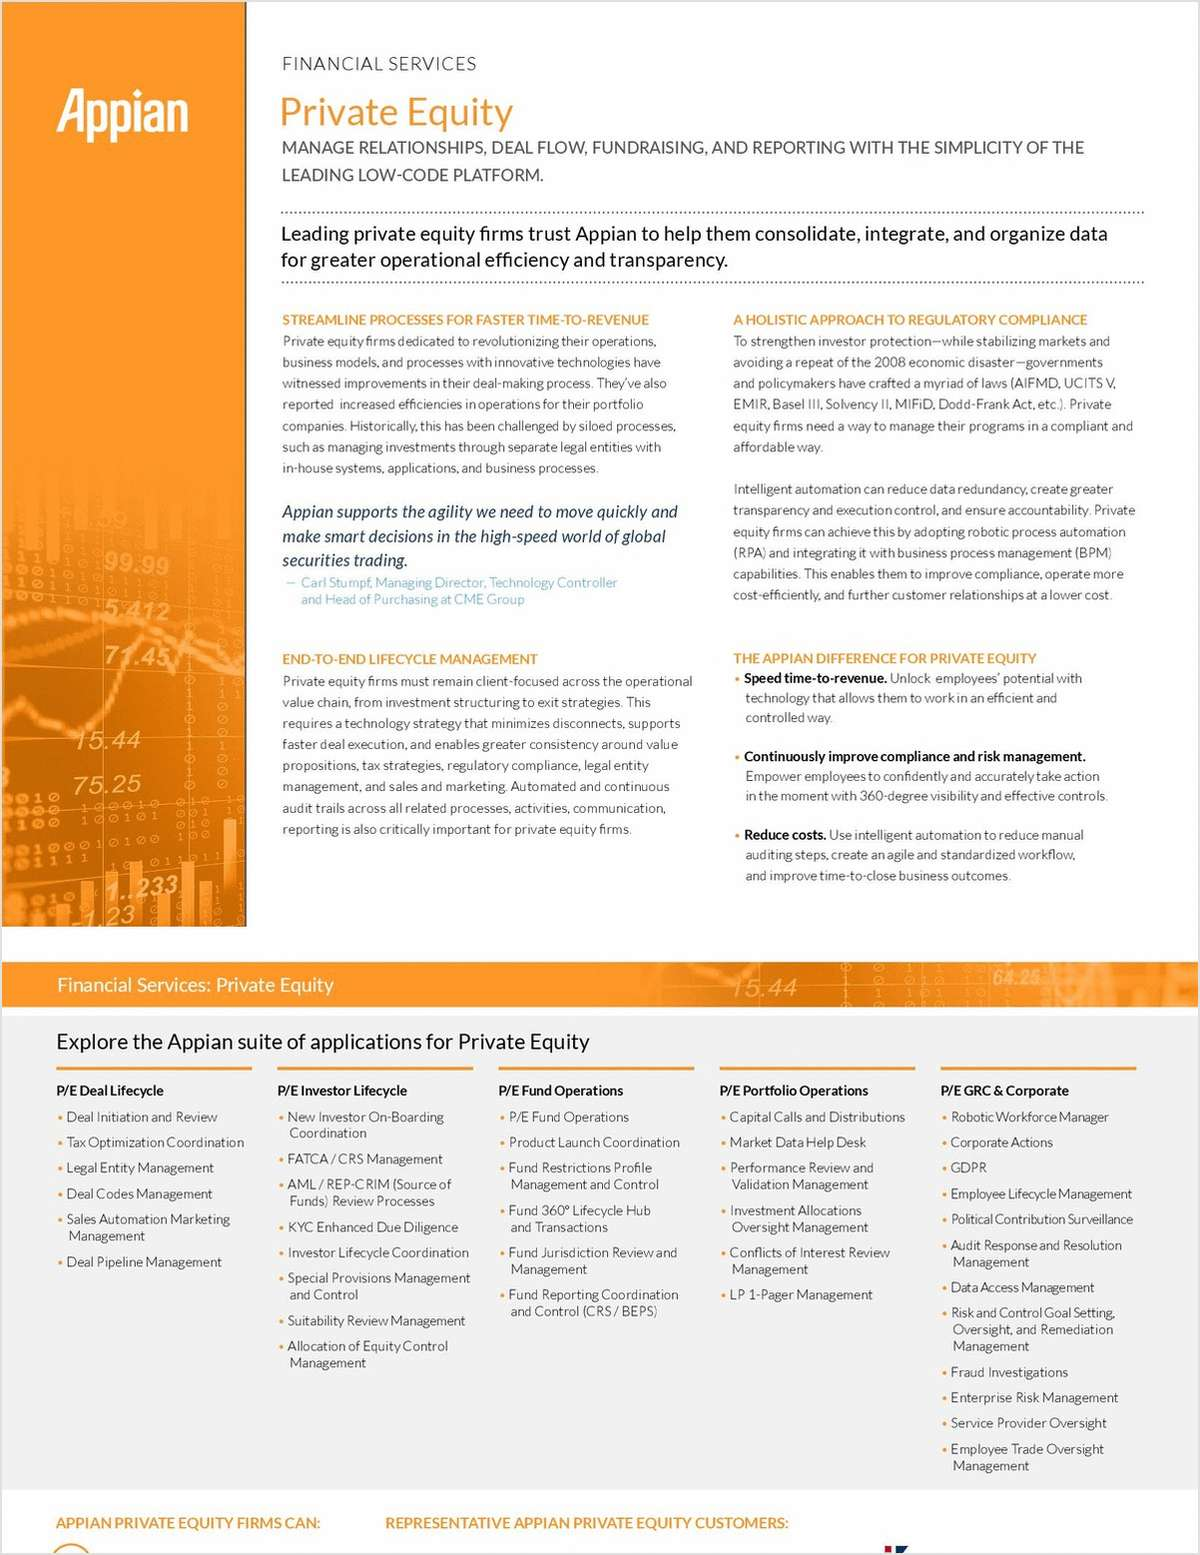 Appian for Private Equity